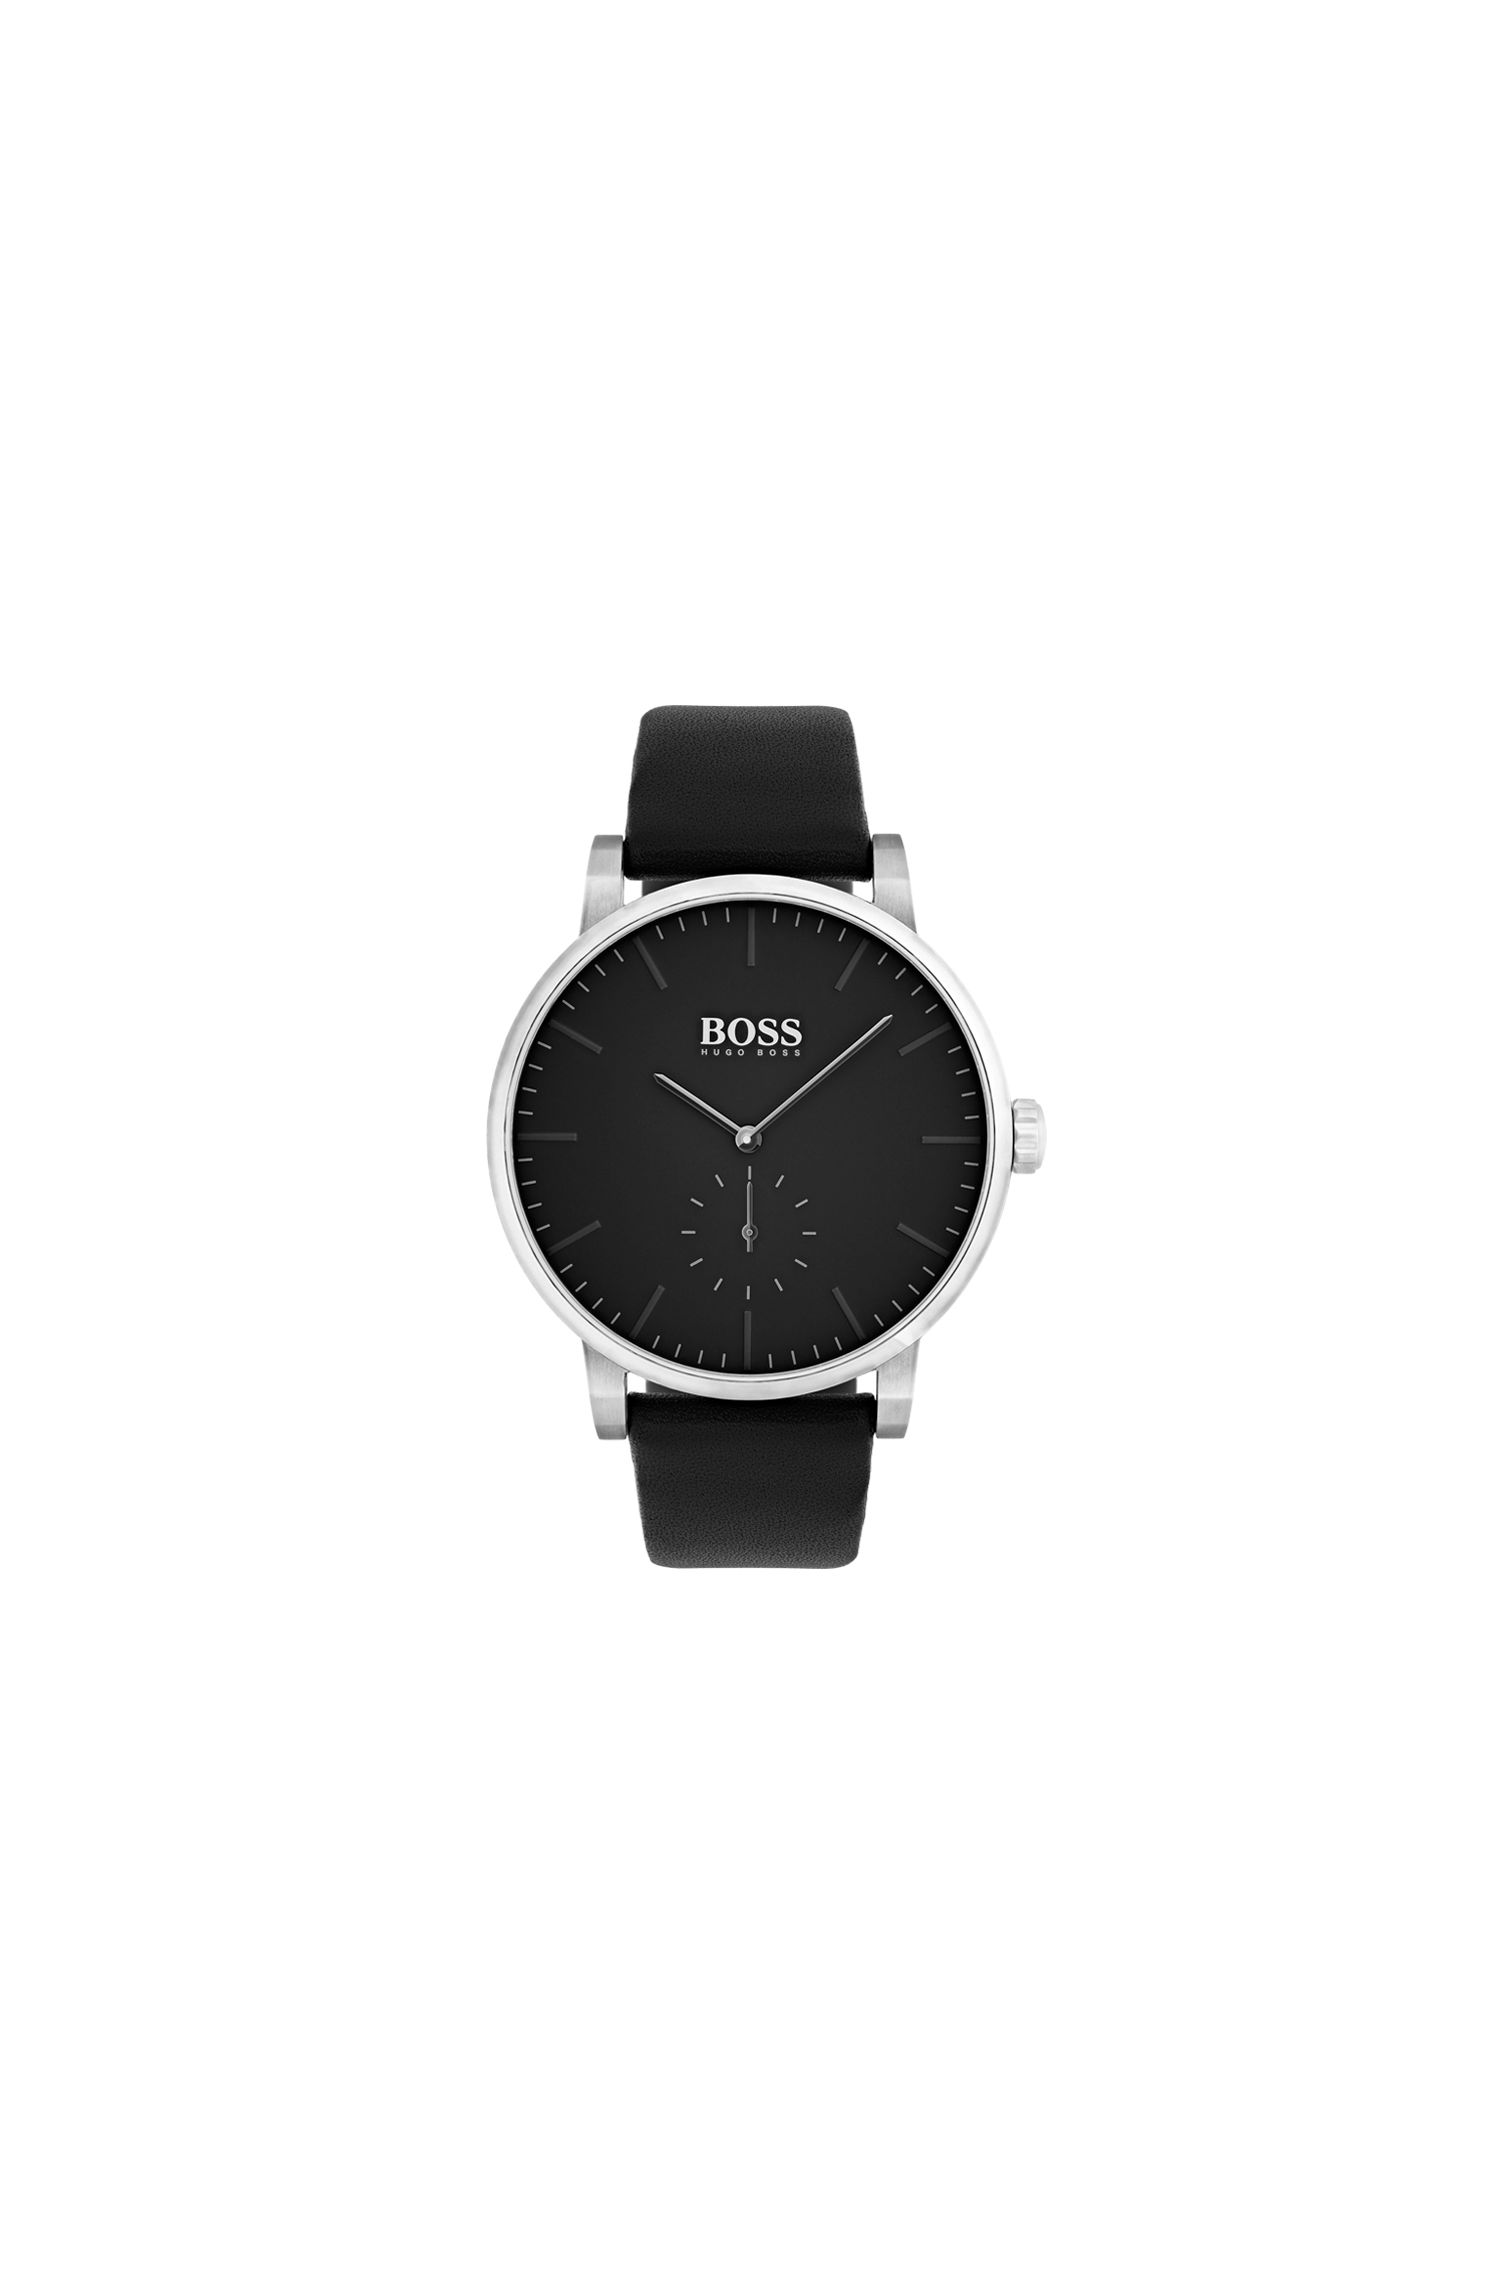 Minimalist stainless-steel watch with matt black dial and leather strap